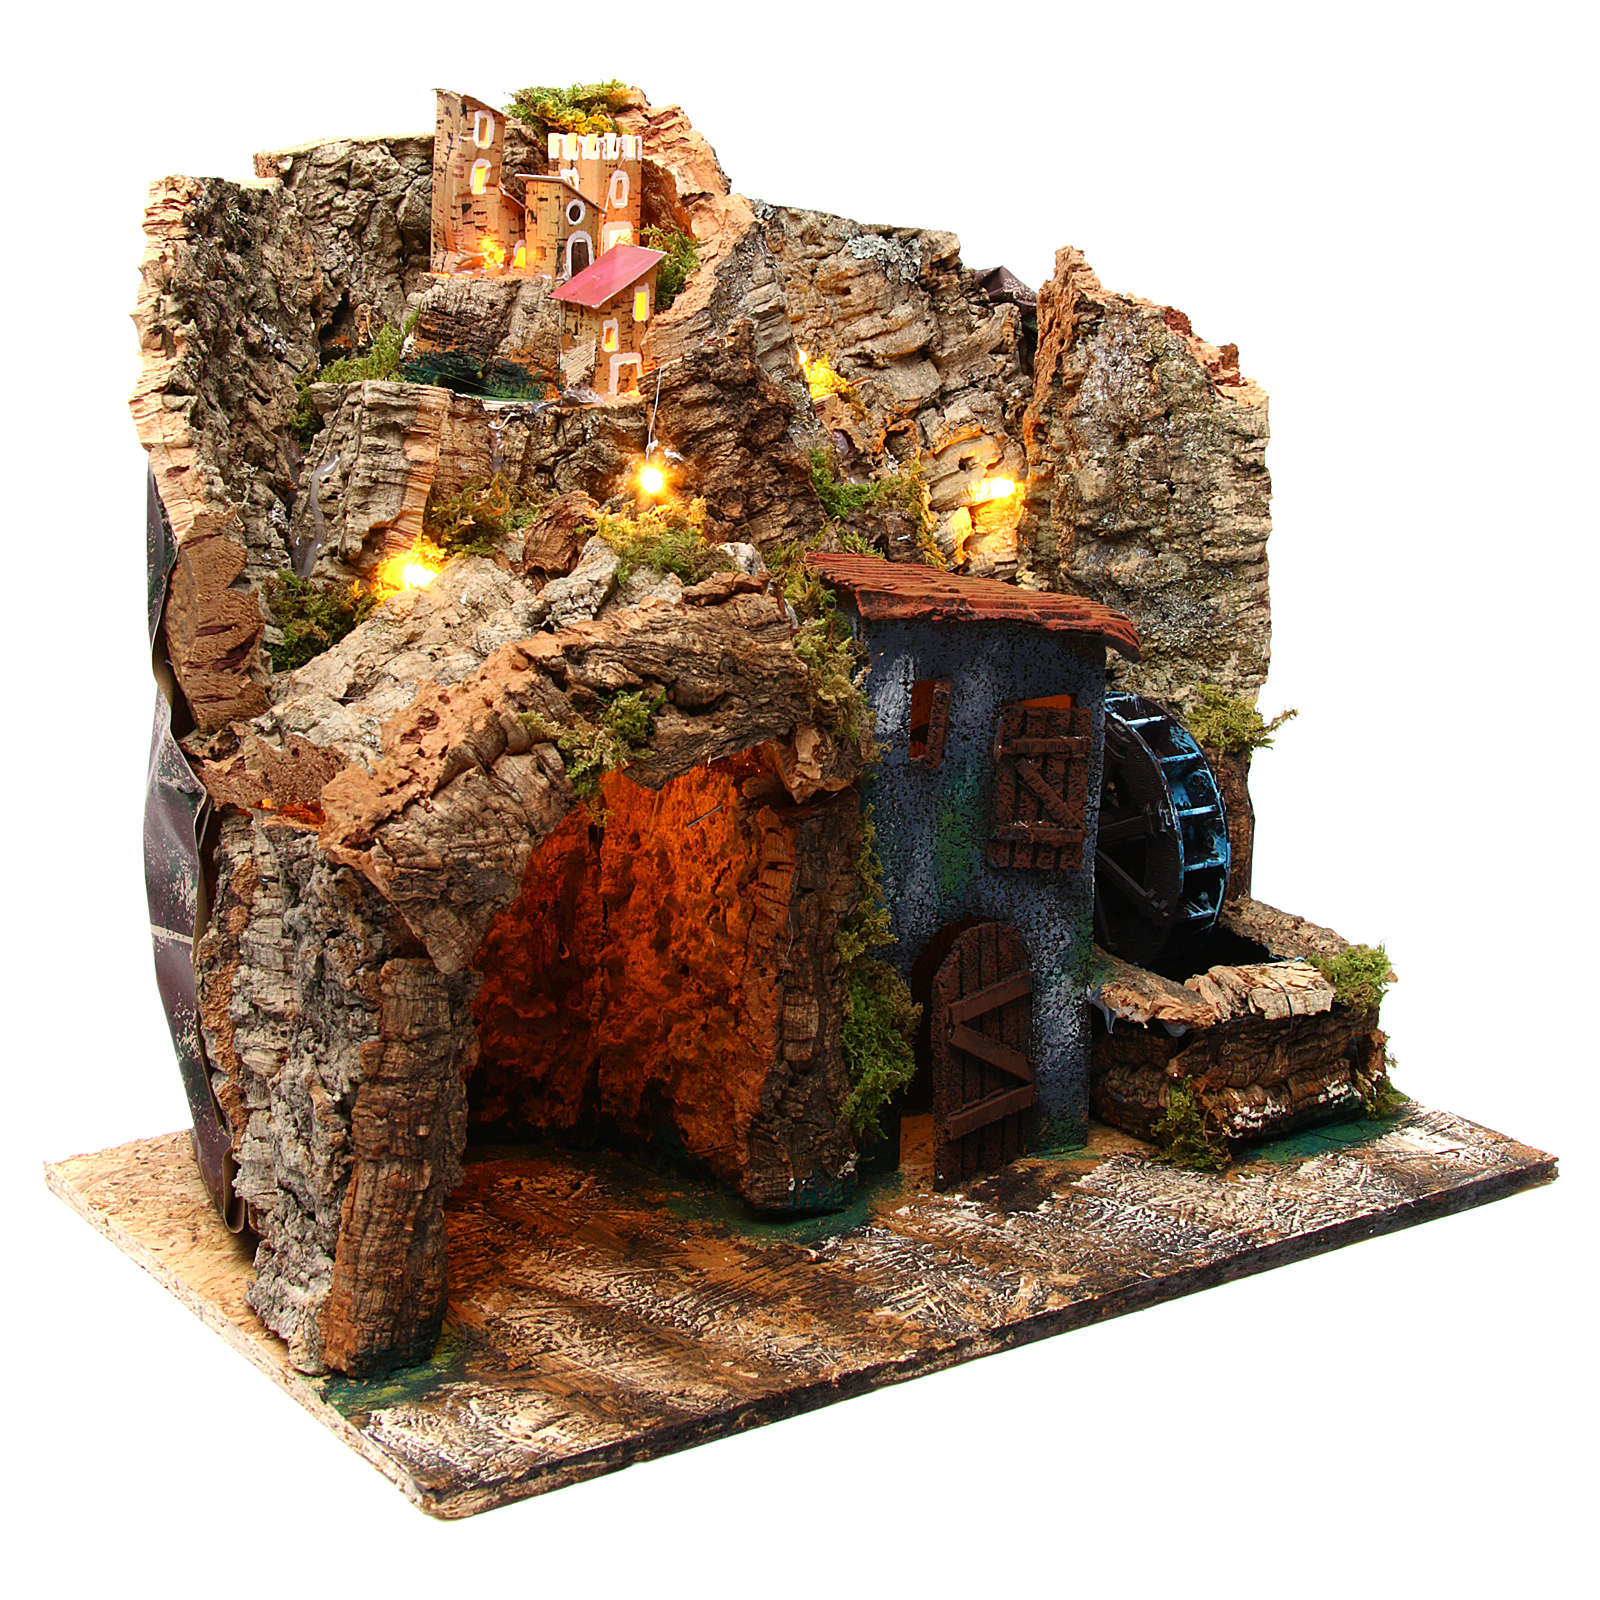 Nativity scene setting Neapolitan village with water mill 45x30x40 cm for 6-8 cm characters 4